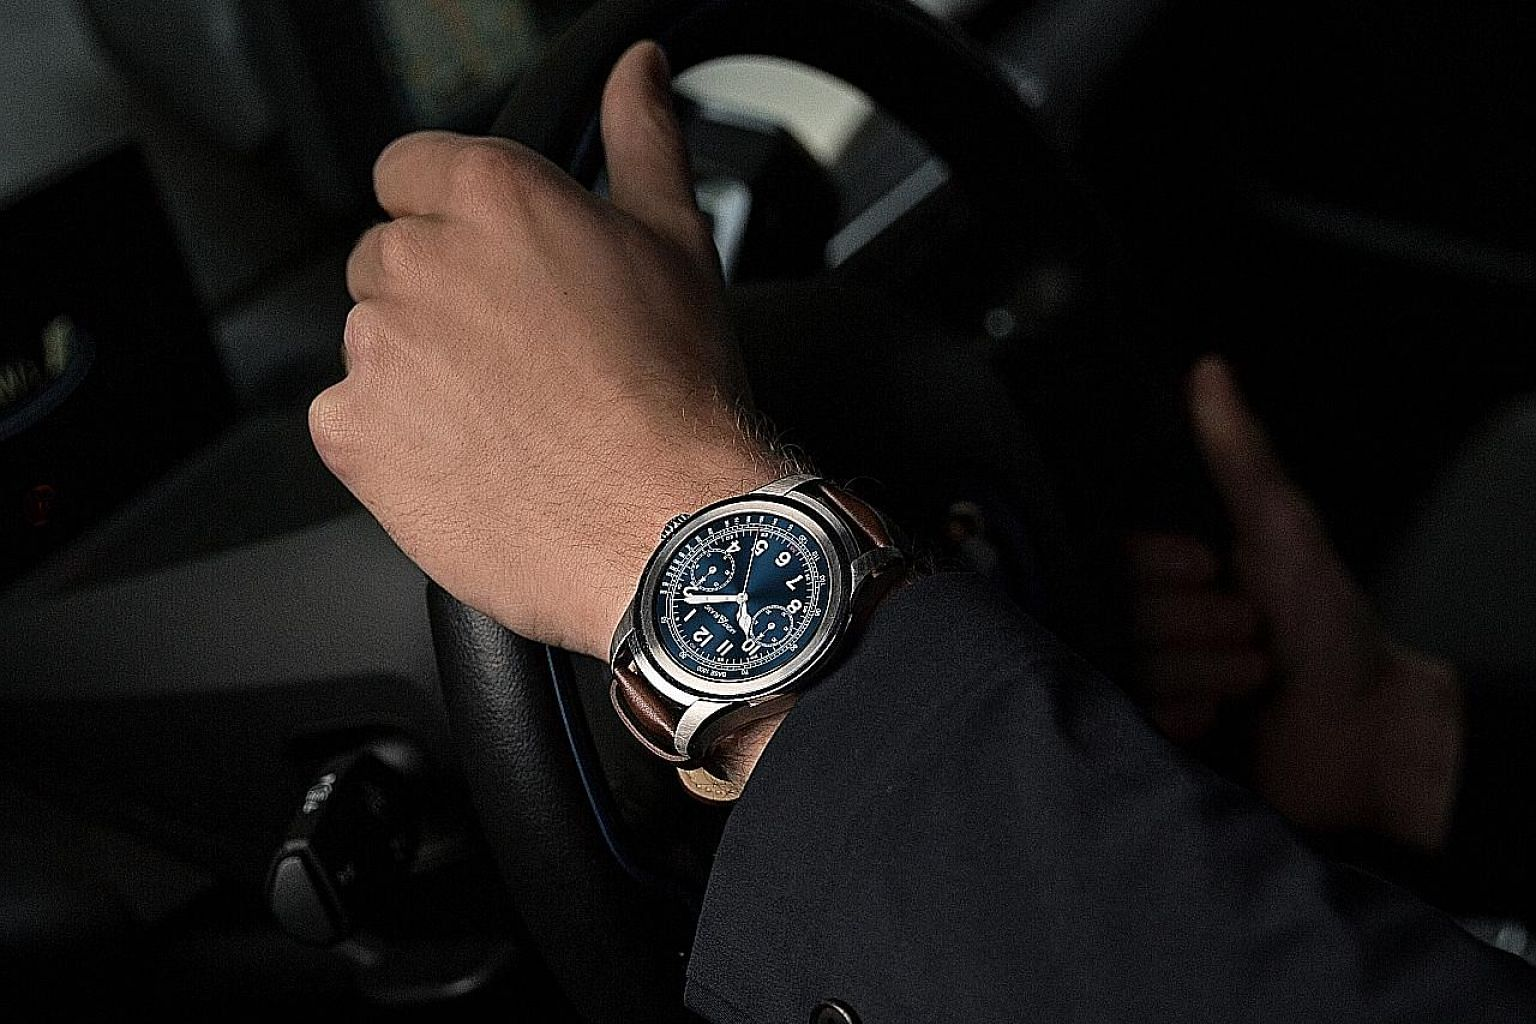 Montblanc's Summit is lightweight and comfortable to wear and its display looks sharp with nice details.